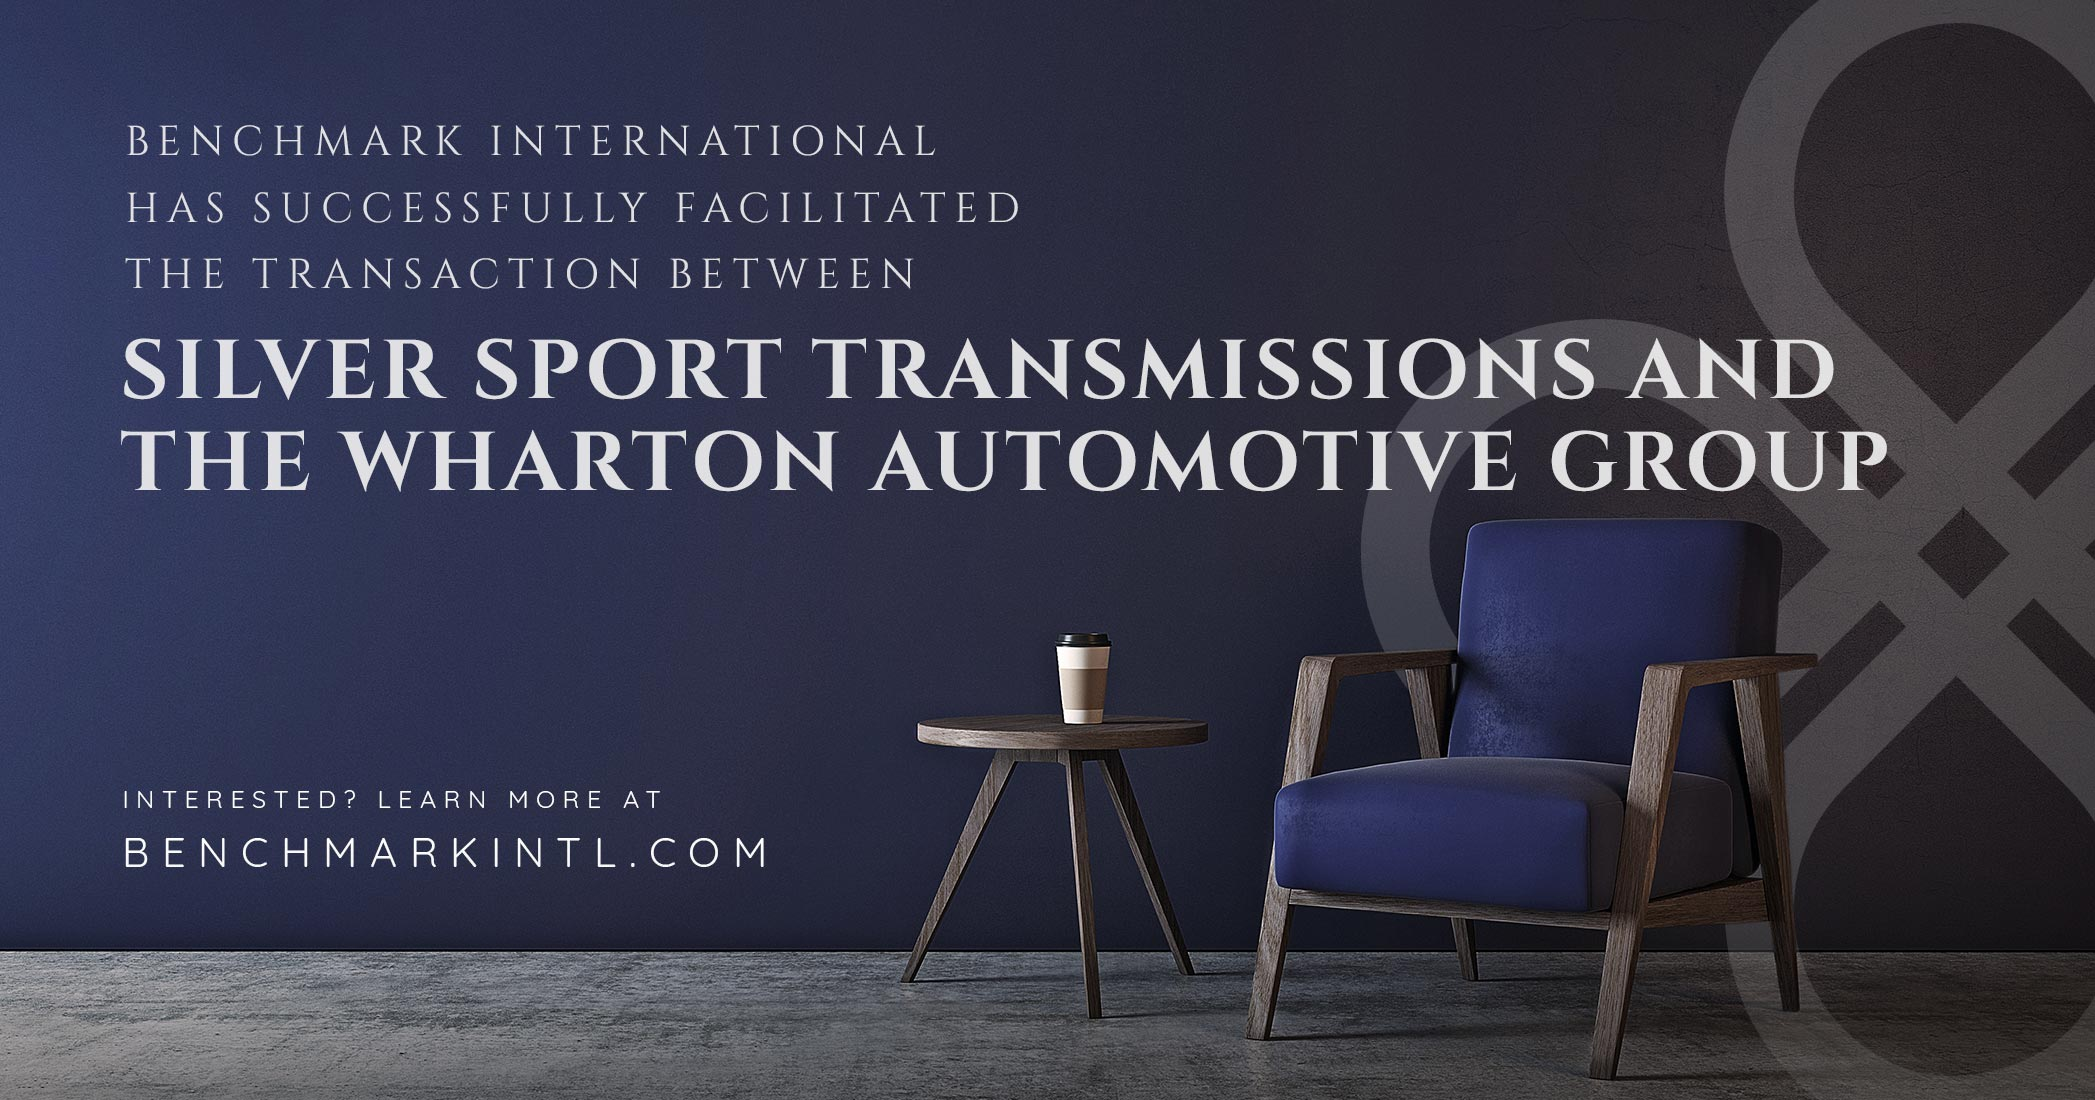 Benchmark International Successfully Facilitated the Transaction Between Silver Sport Transmissions and The Wharton Automotive Group